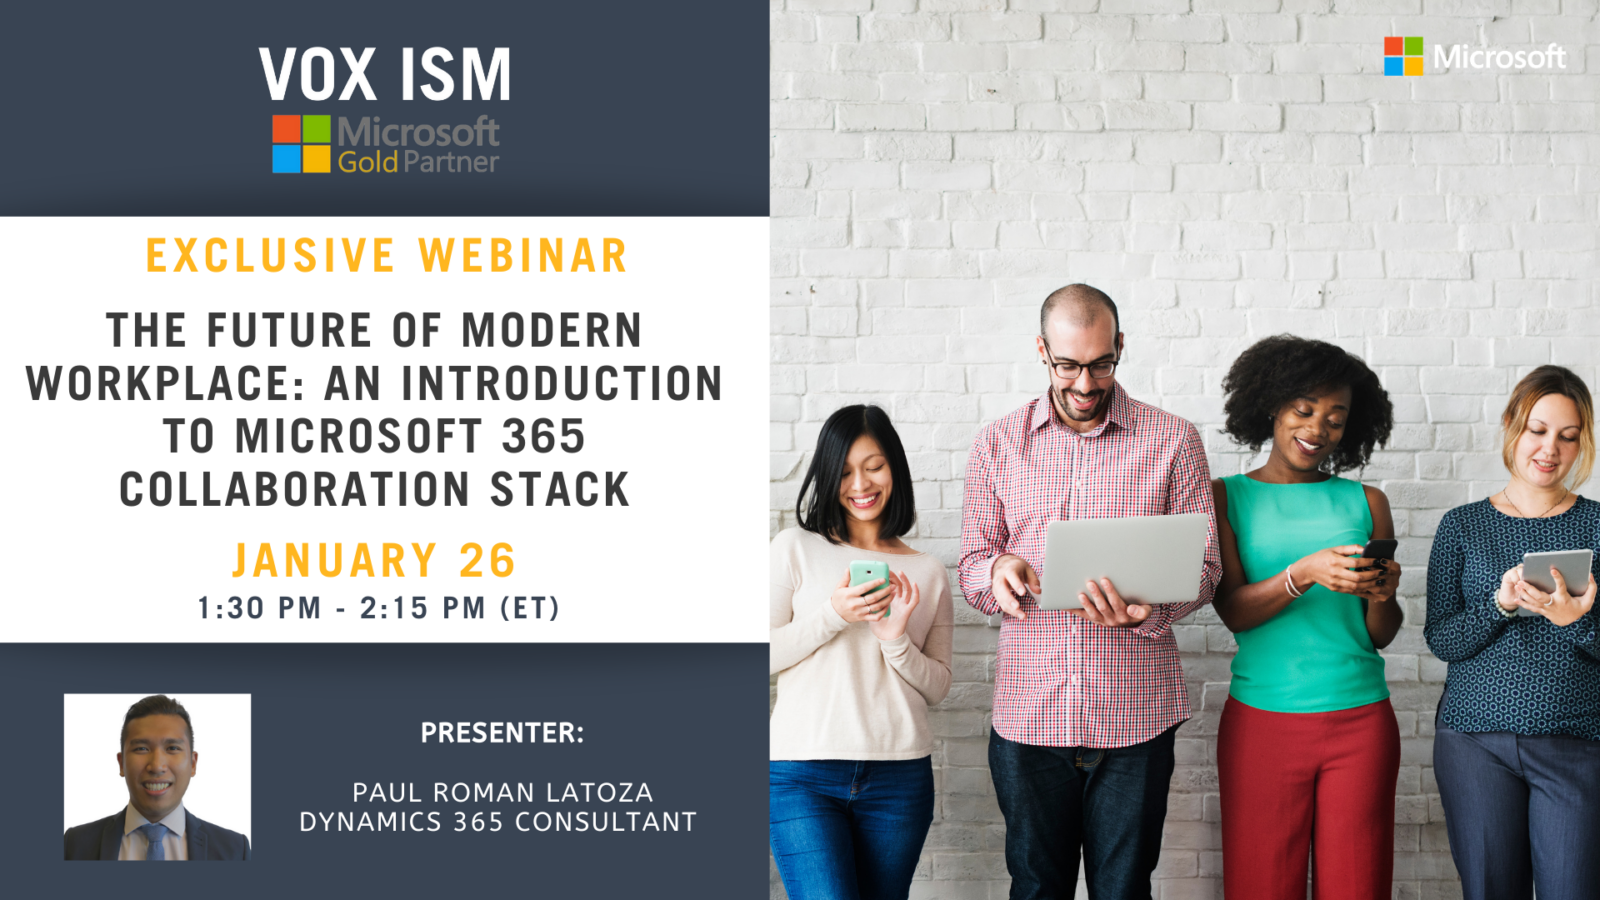 The Future of Modern Workplace: An Introduction to Microsoft 365 Collaboration Stack - January 26 - Webinar